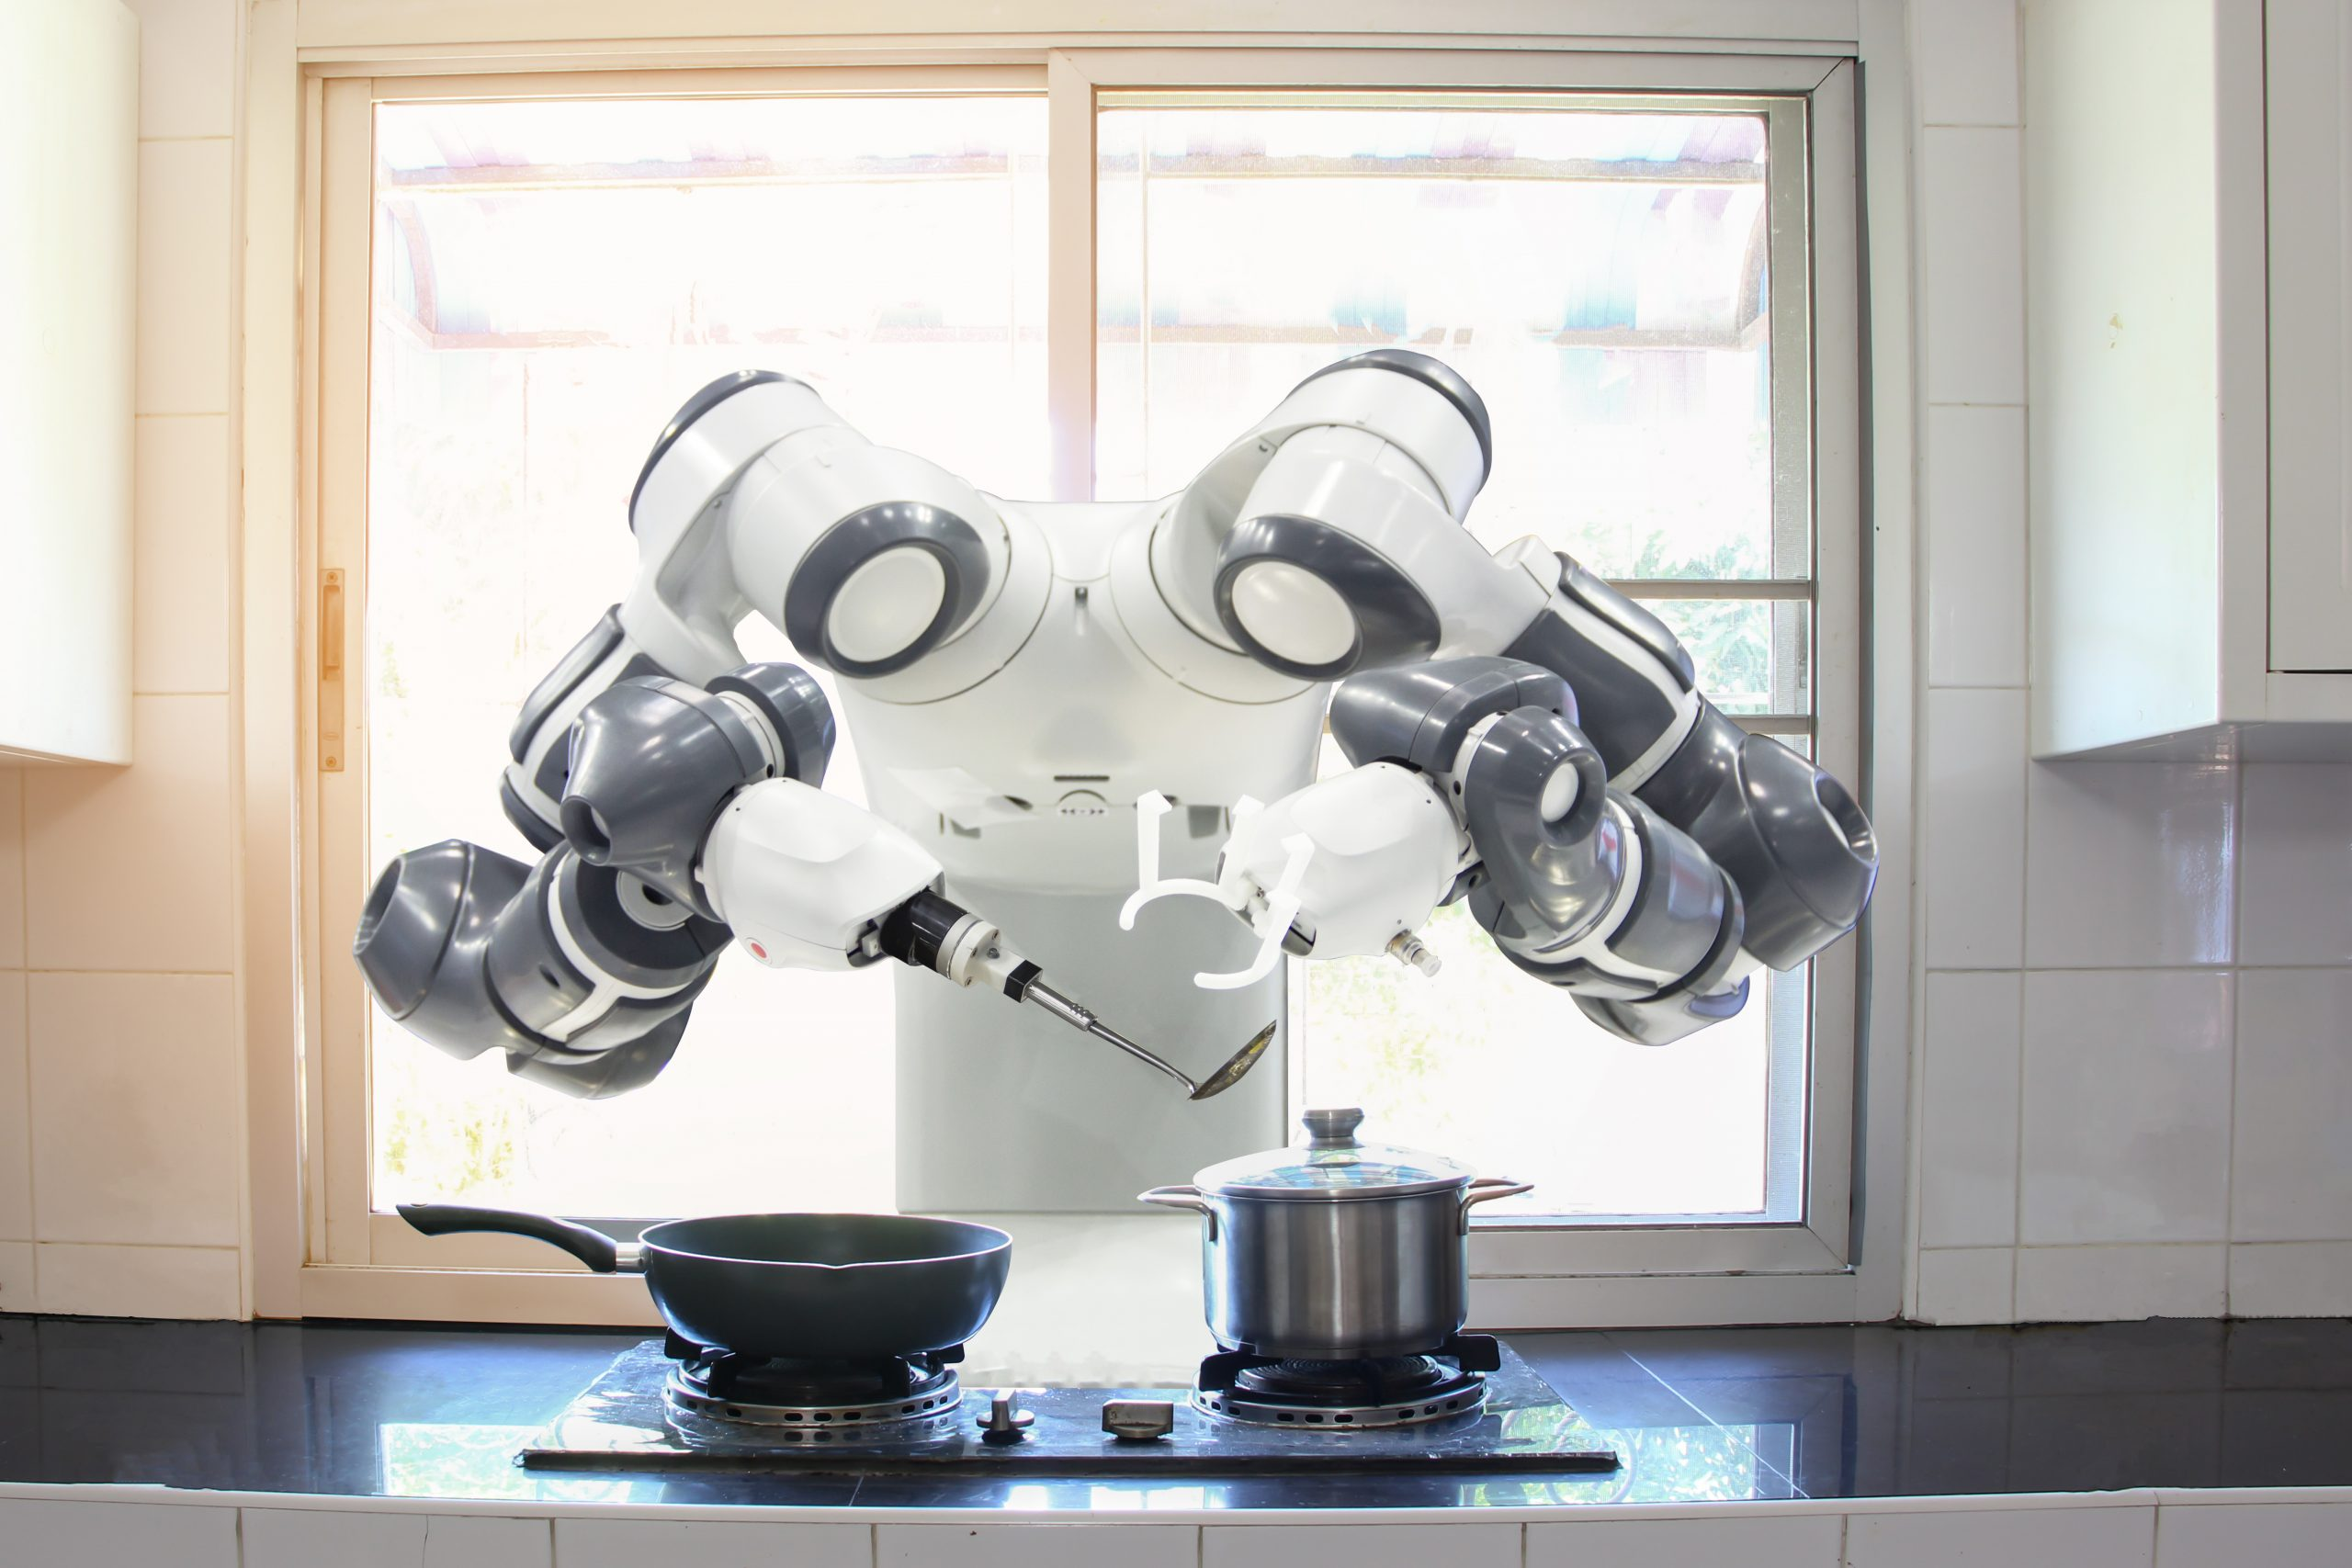 Cooking robot with computer vision